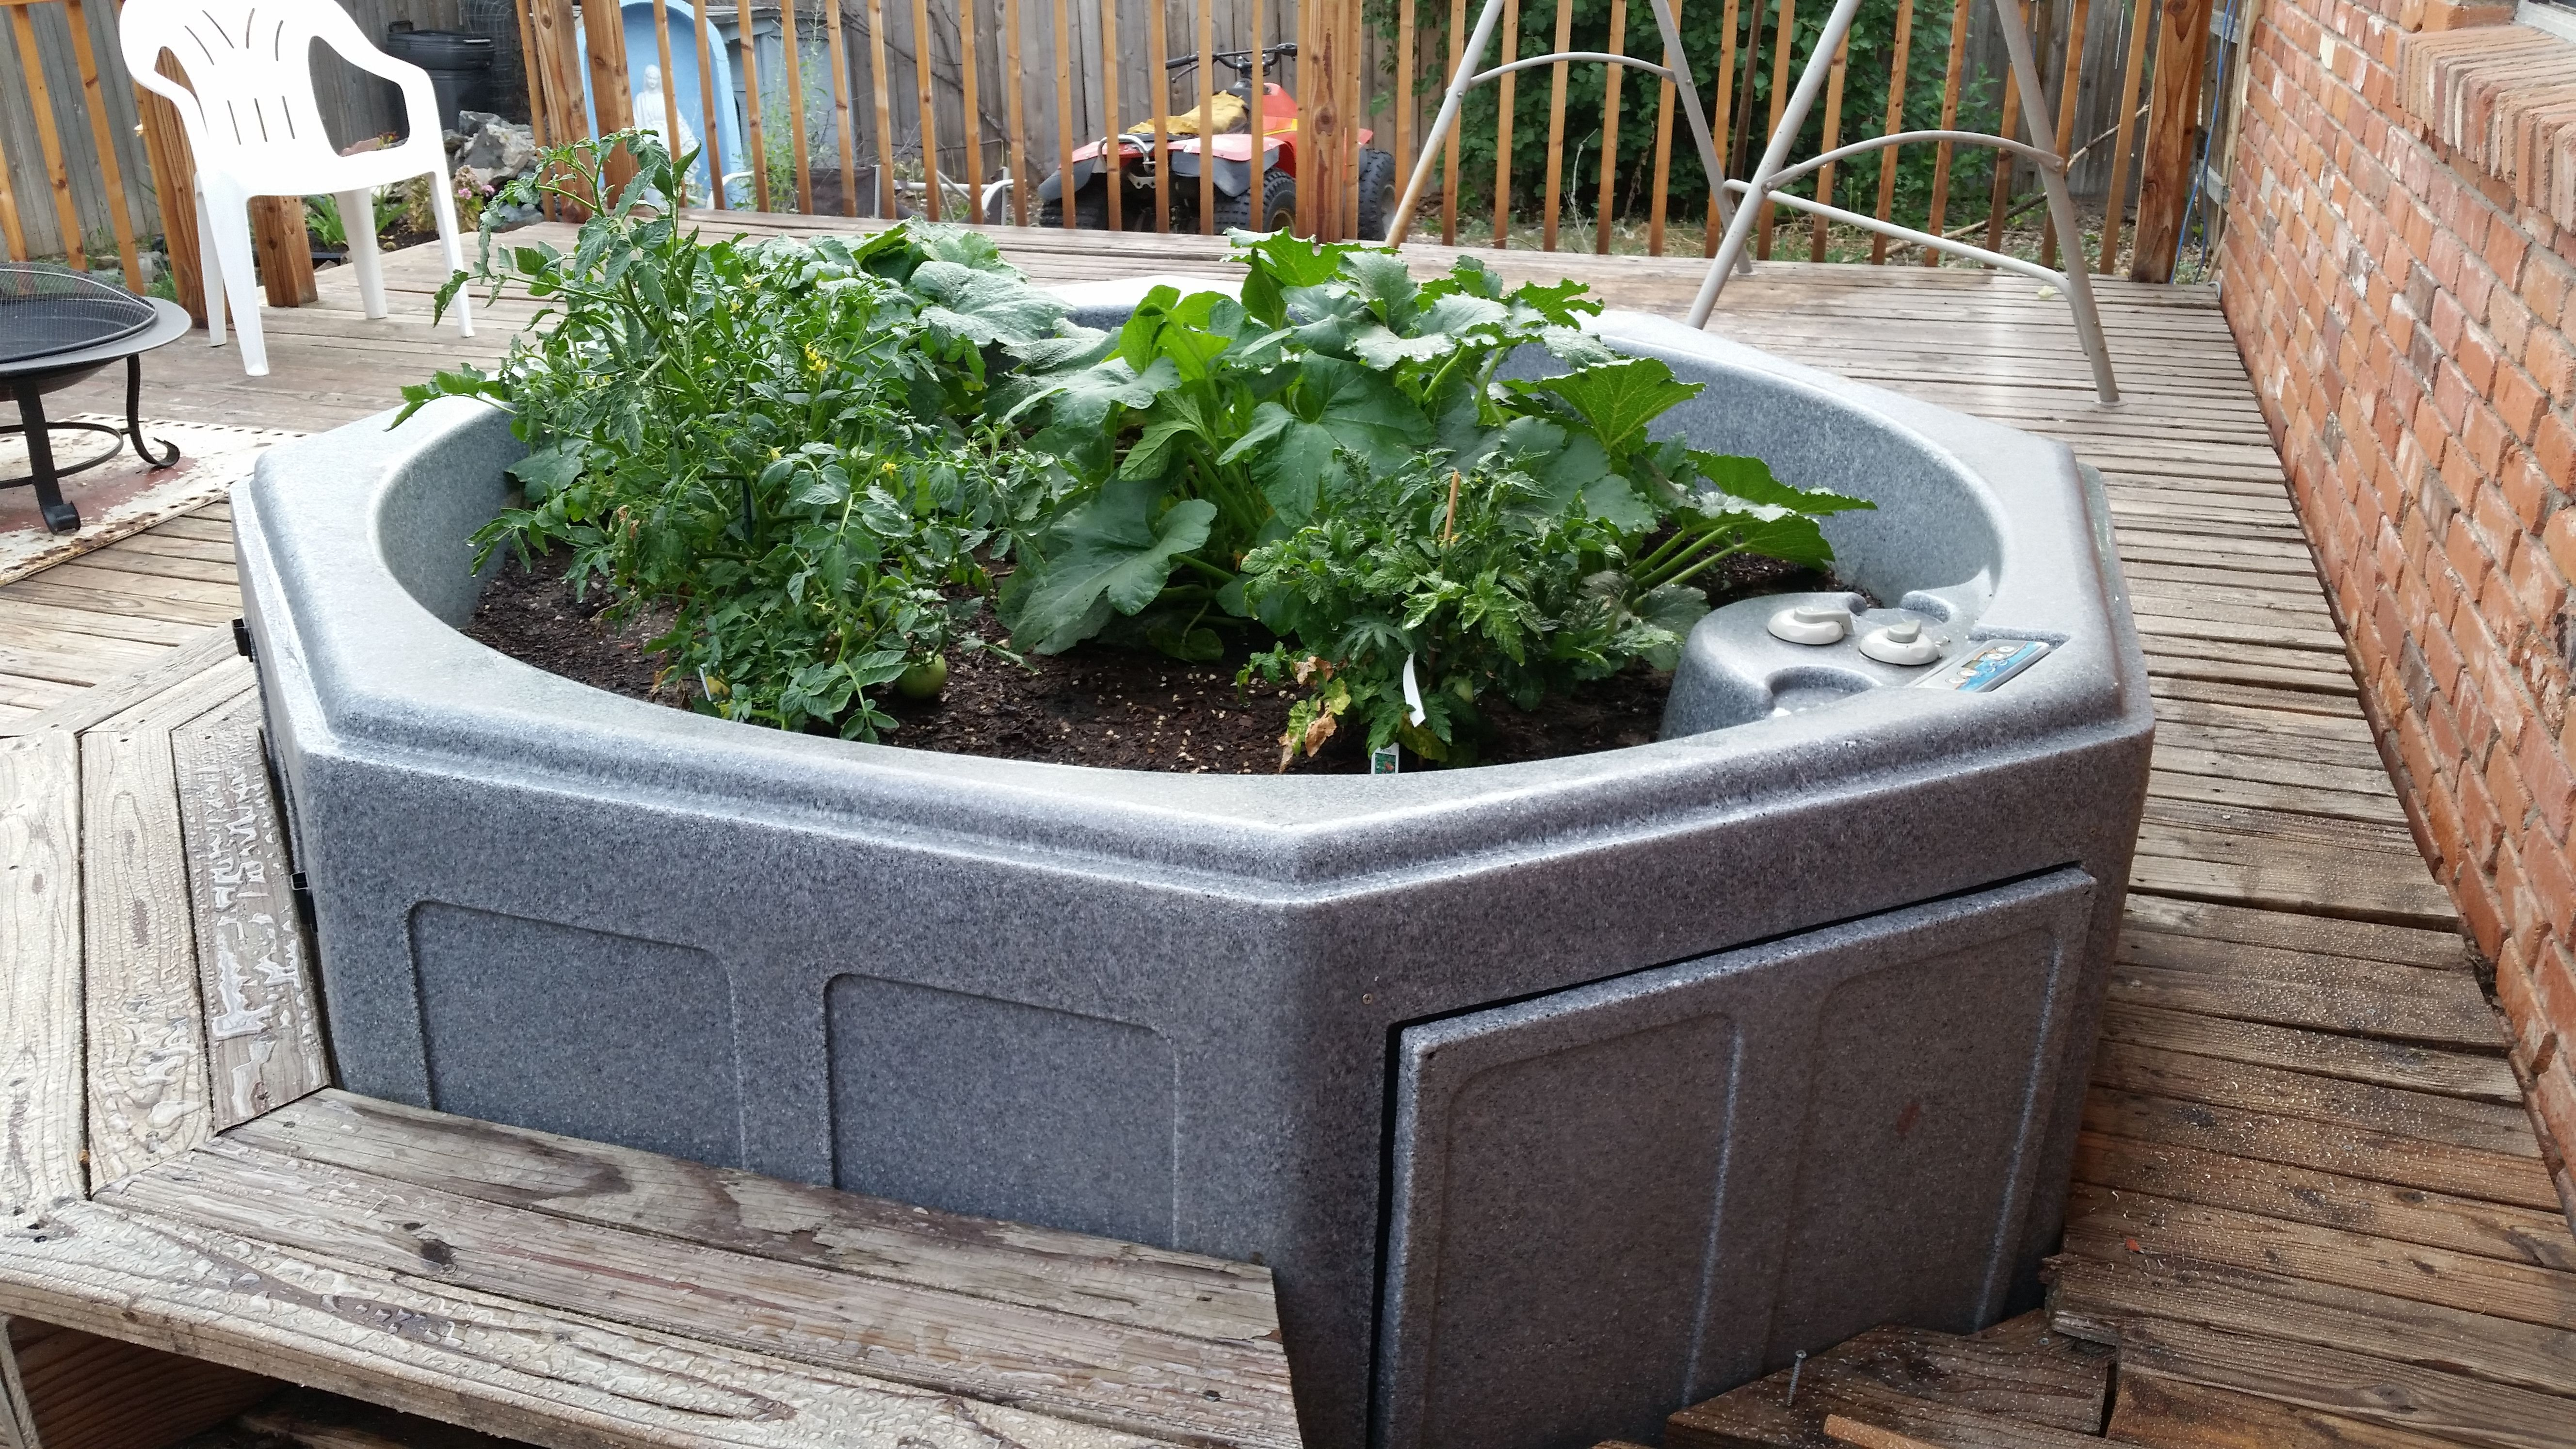 Repurposed Hot Tub Rather Than Put The Extensive Money Into